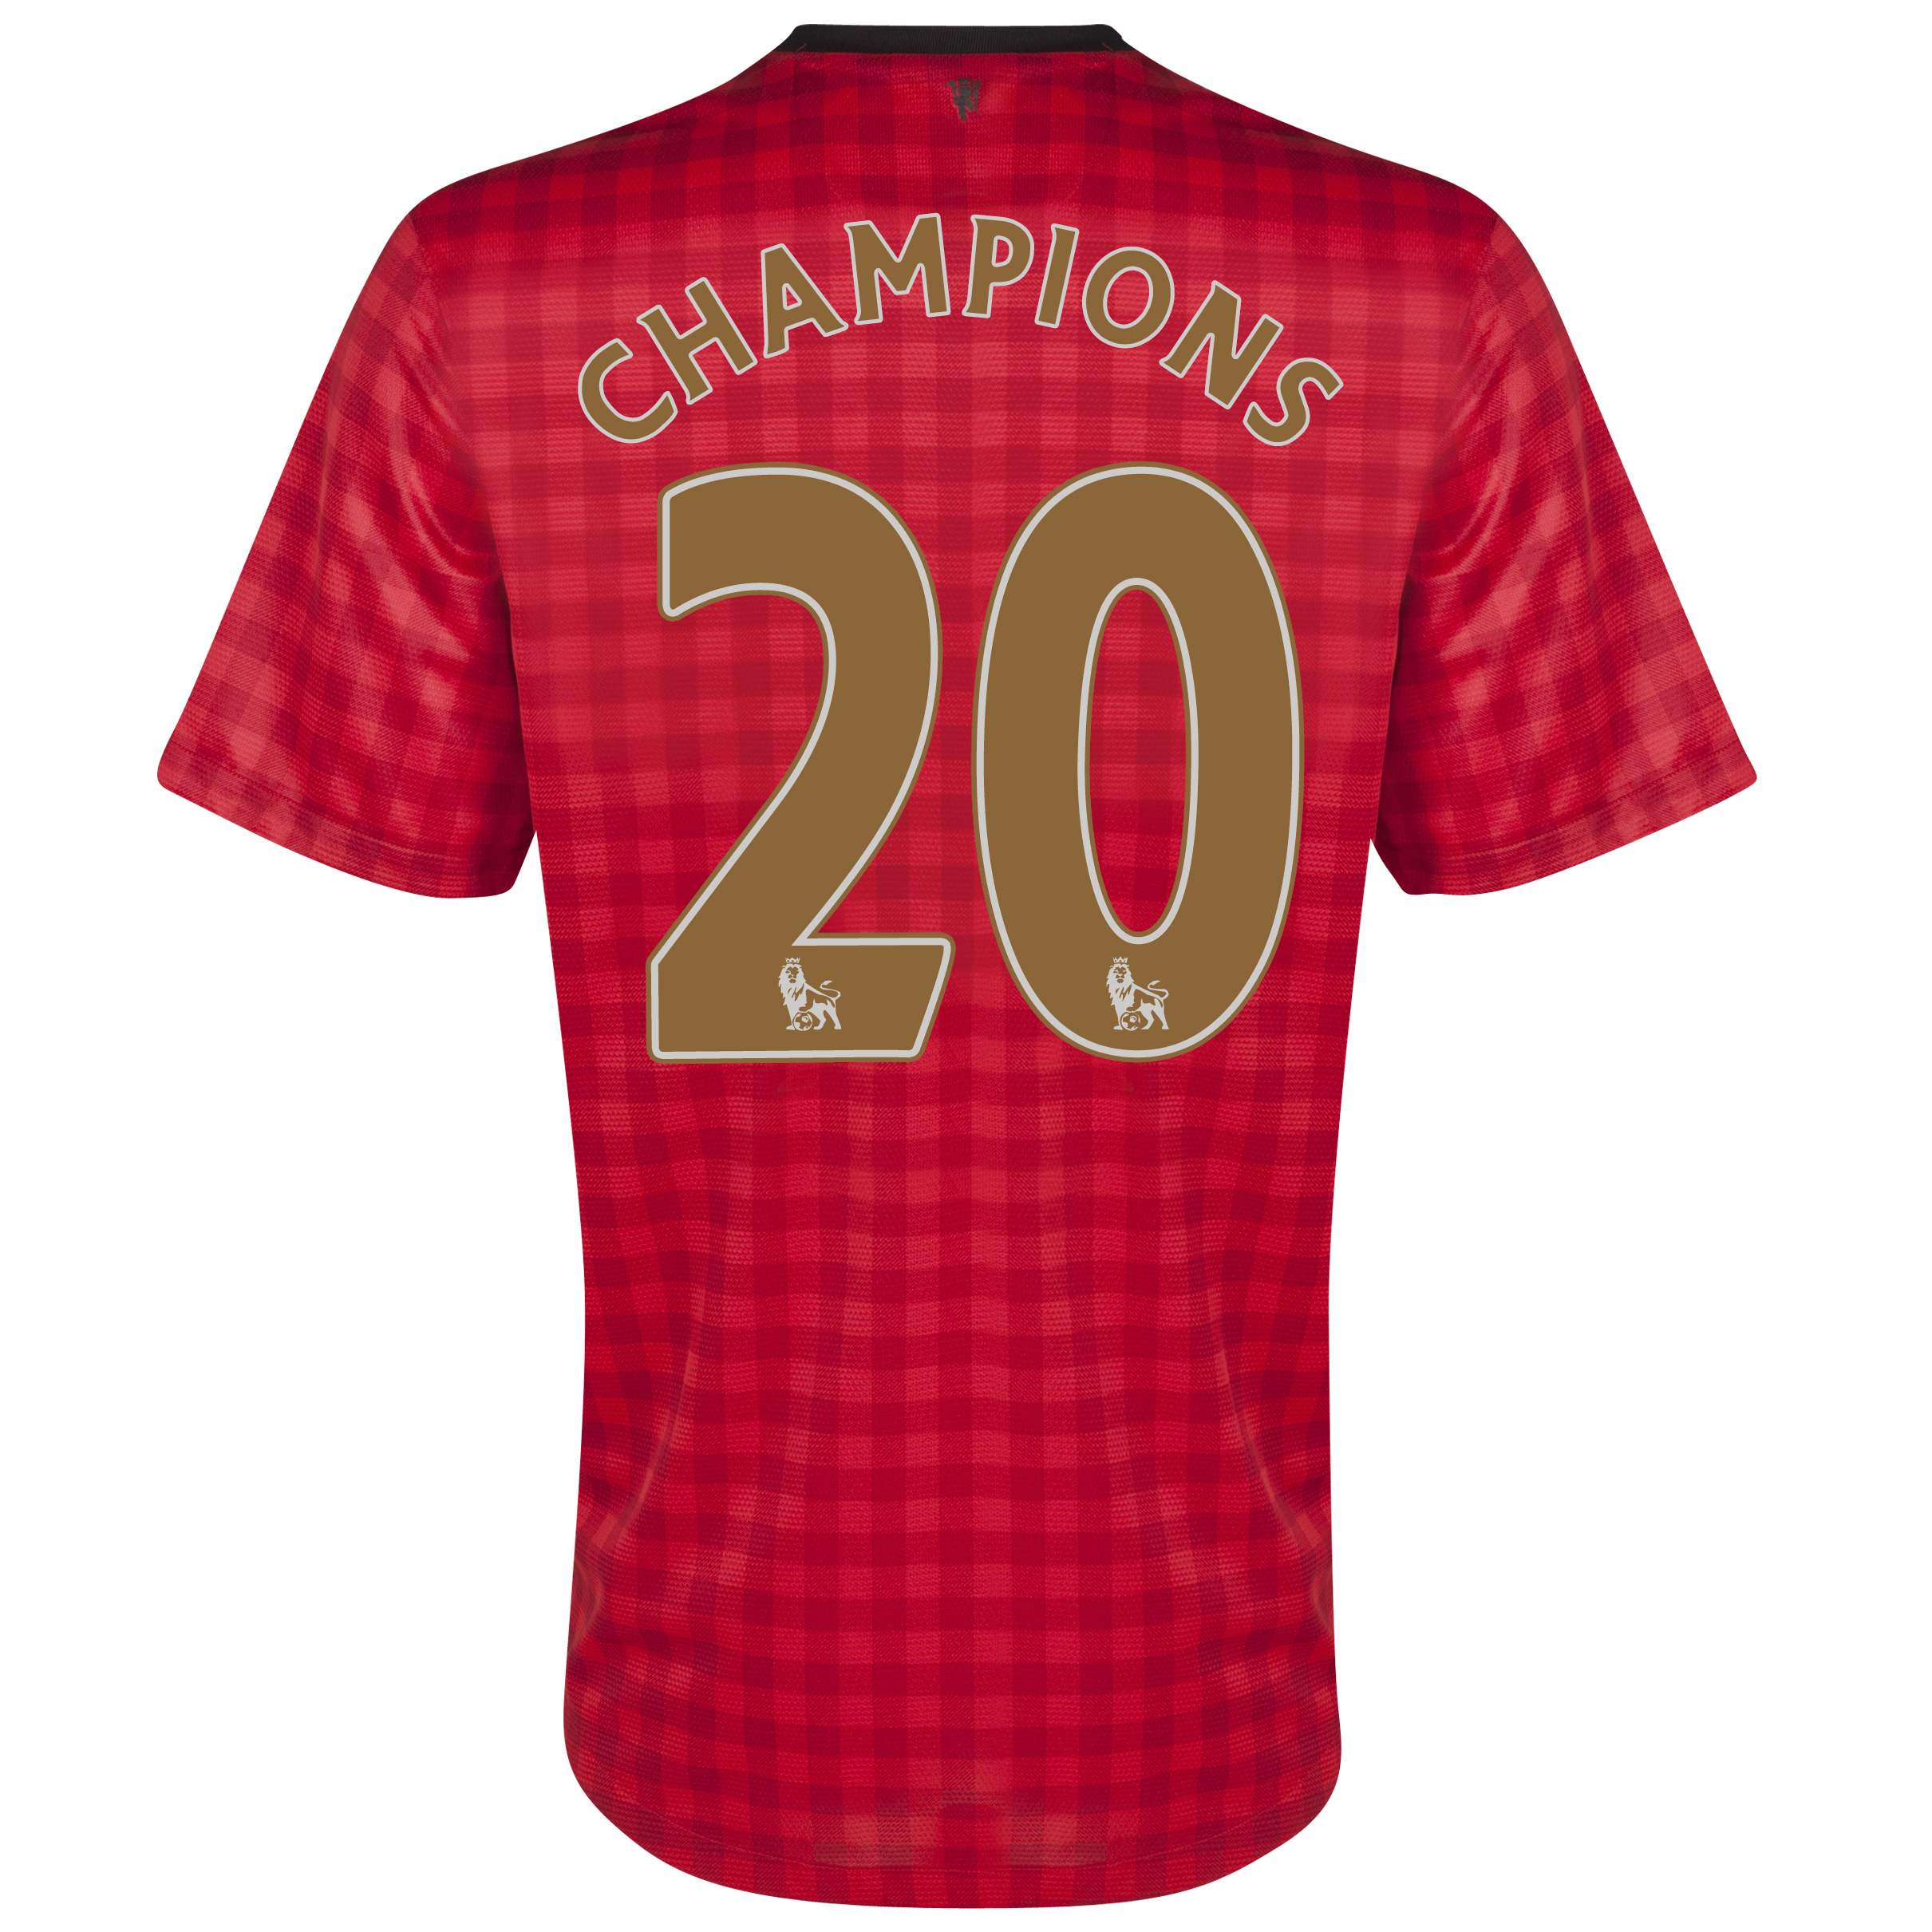 Manchester United Home Shirt 2012/13  - Youths with Champions 20 printing